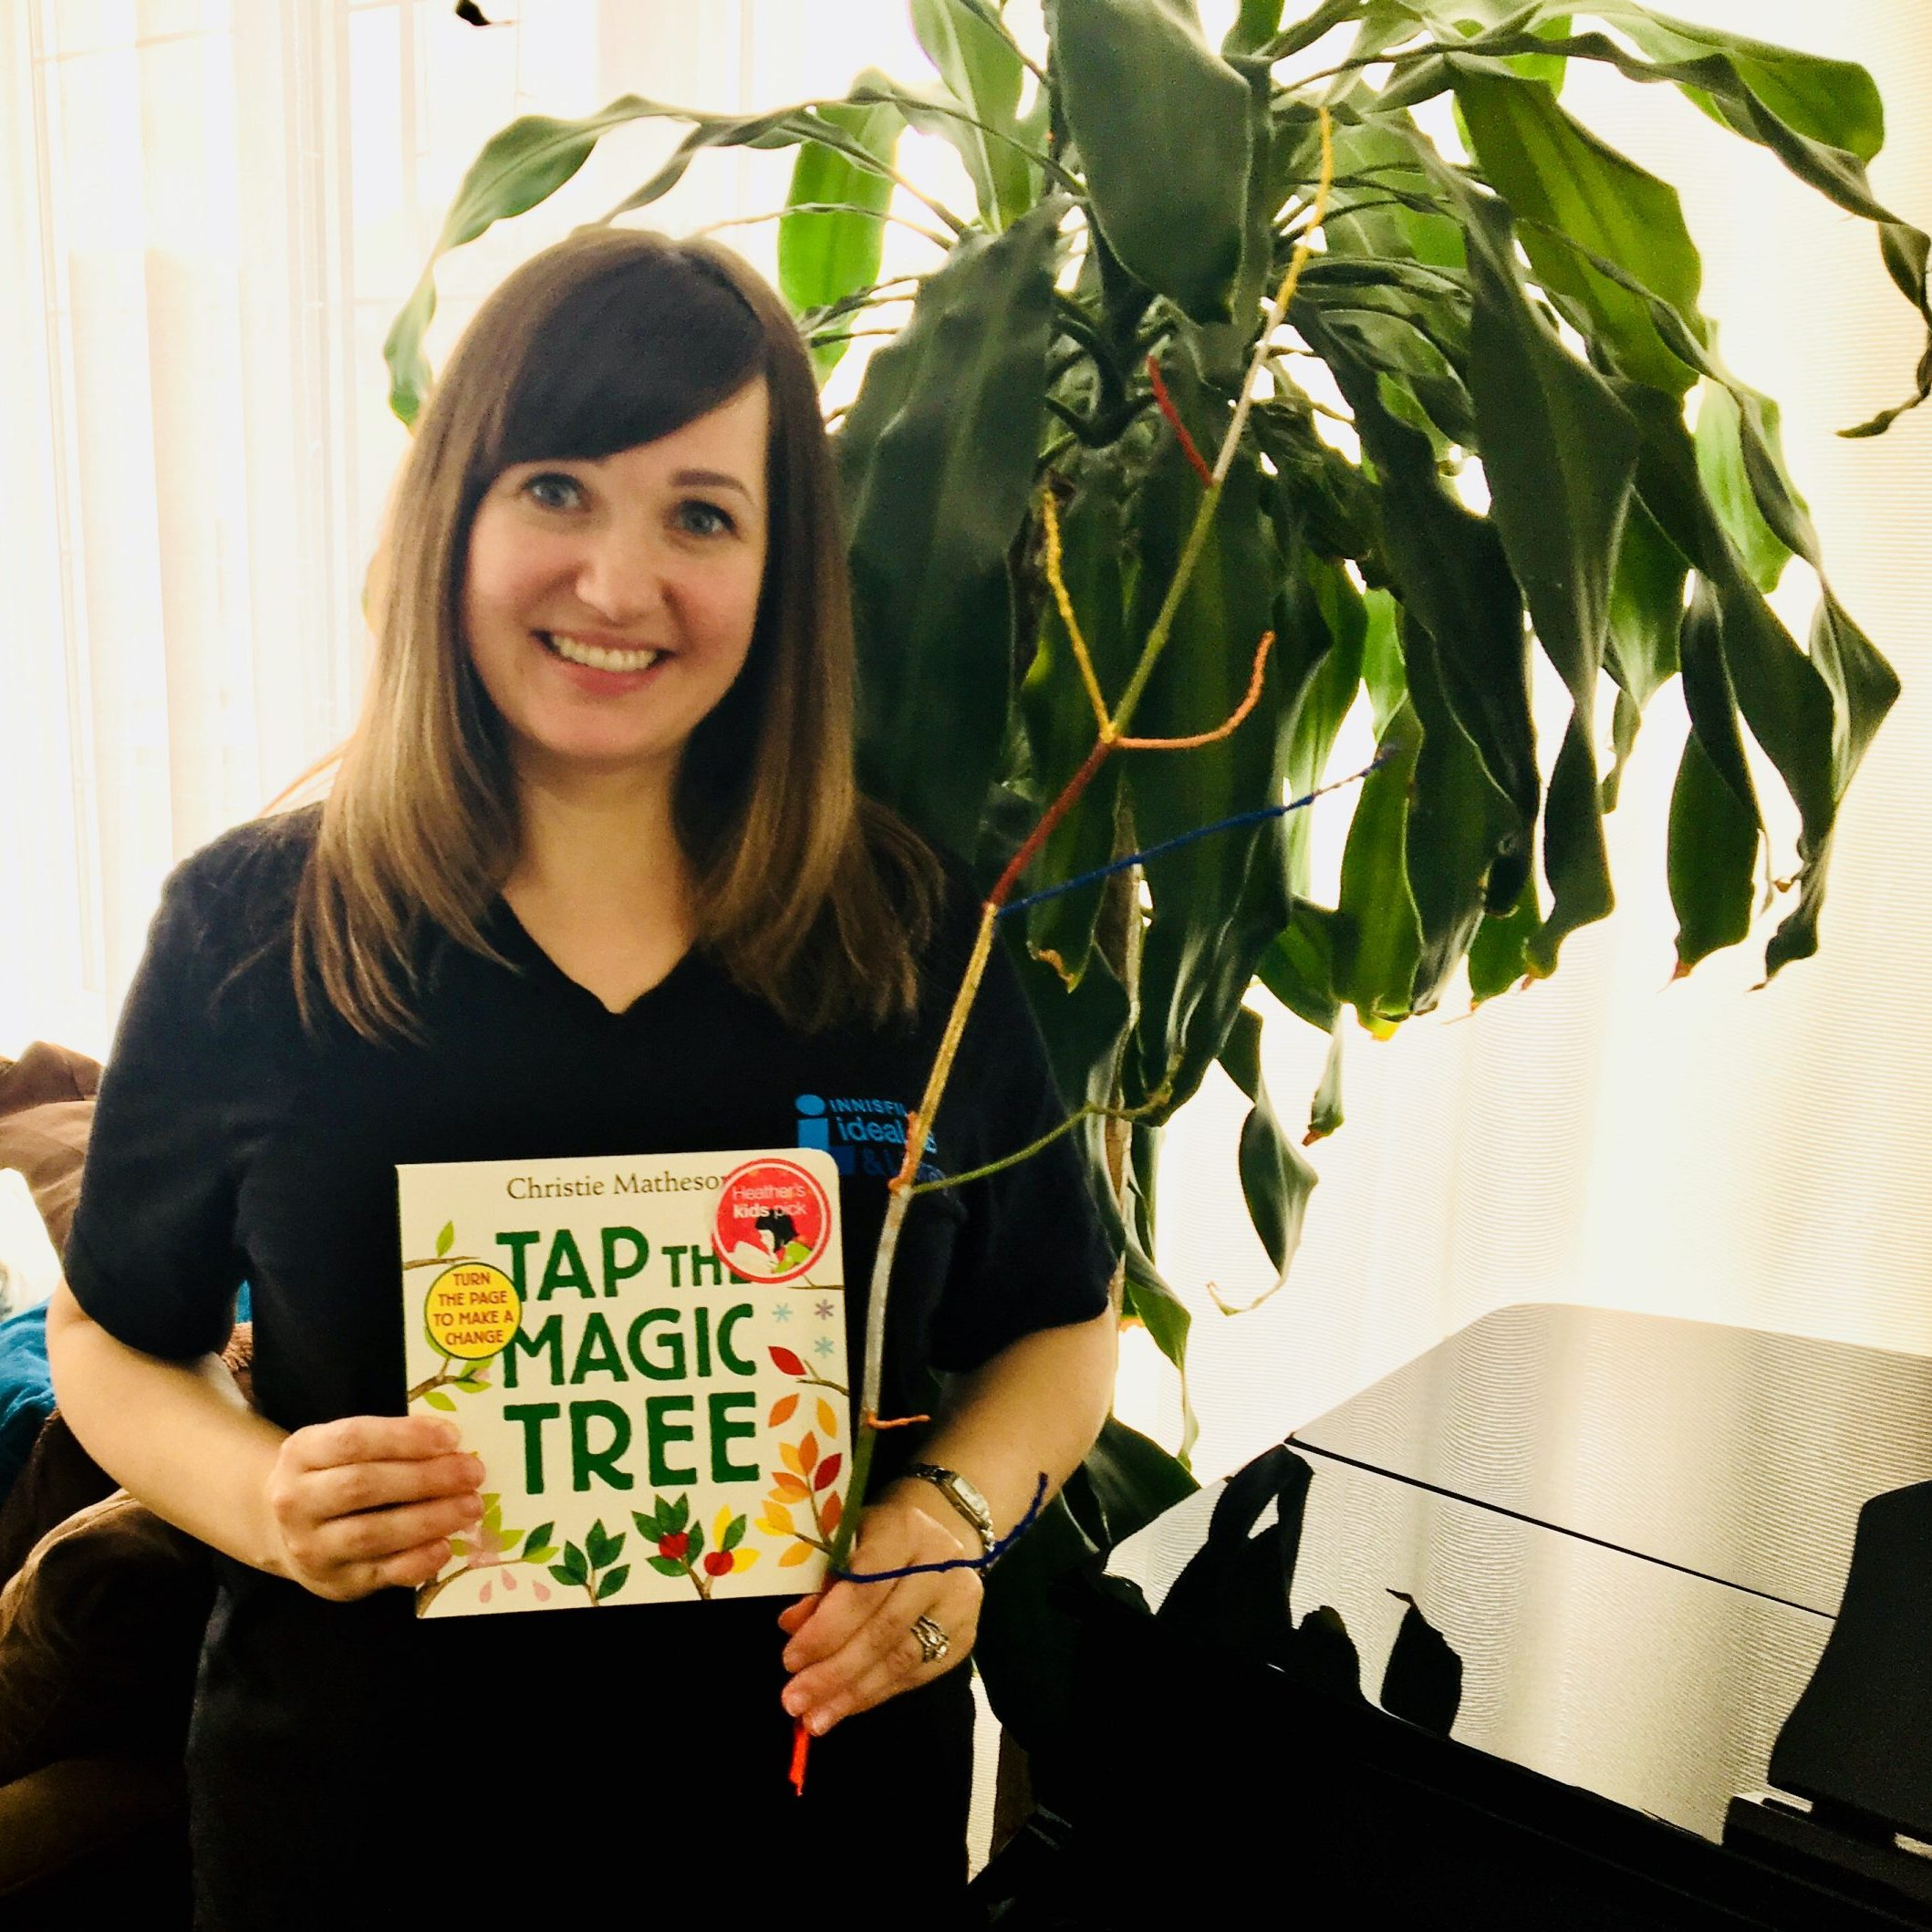 Storytime: Tap The Magic Tree with Marianna